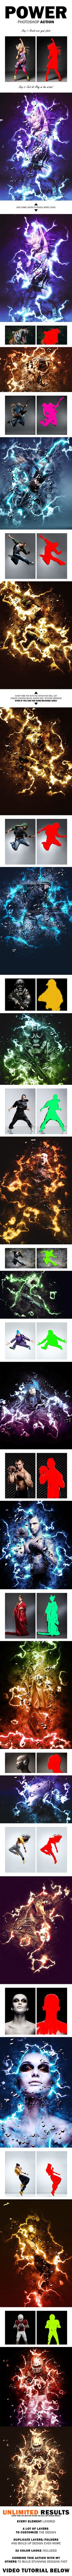 Power Photoshop Action #atn Download: http://graphicriver.net/item/power-photoshop-action/11093015?ref=ksioks